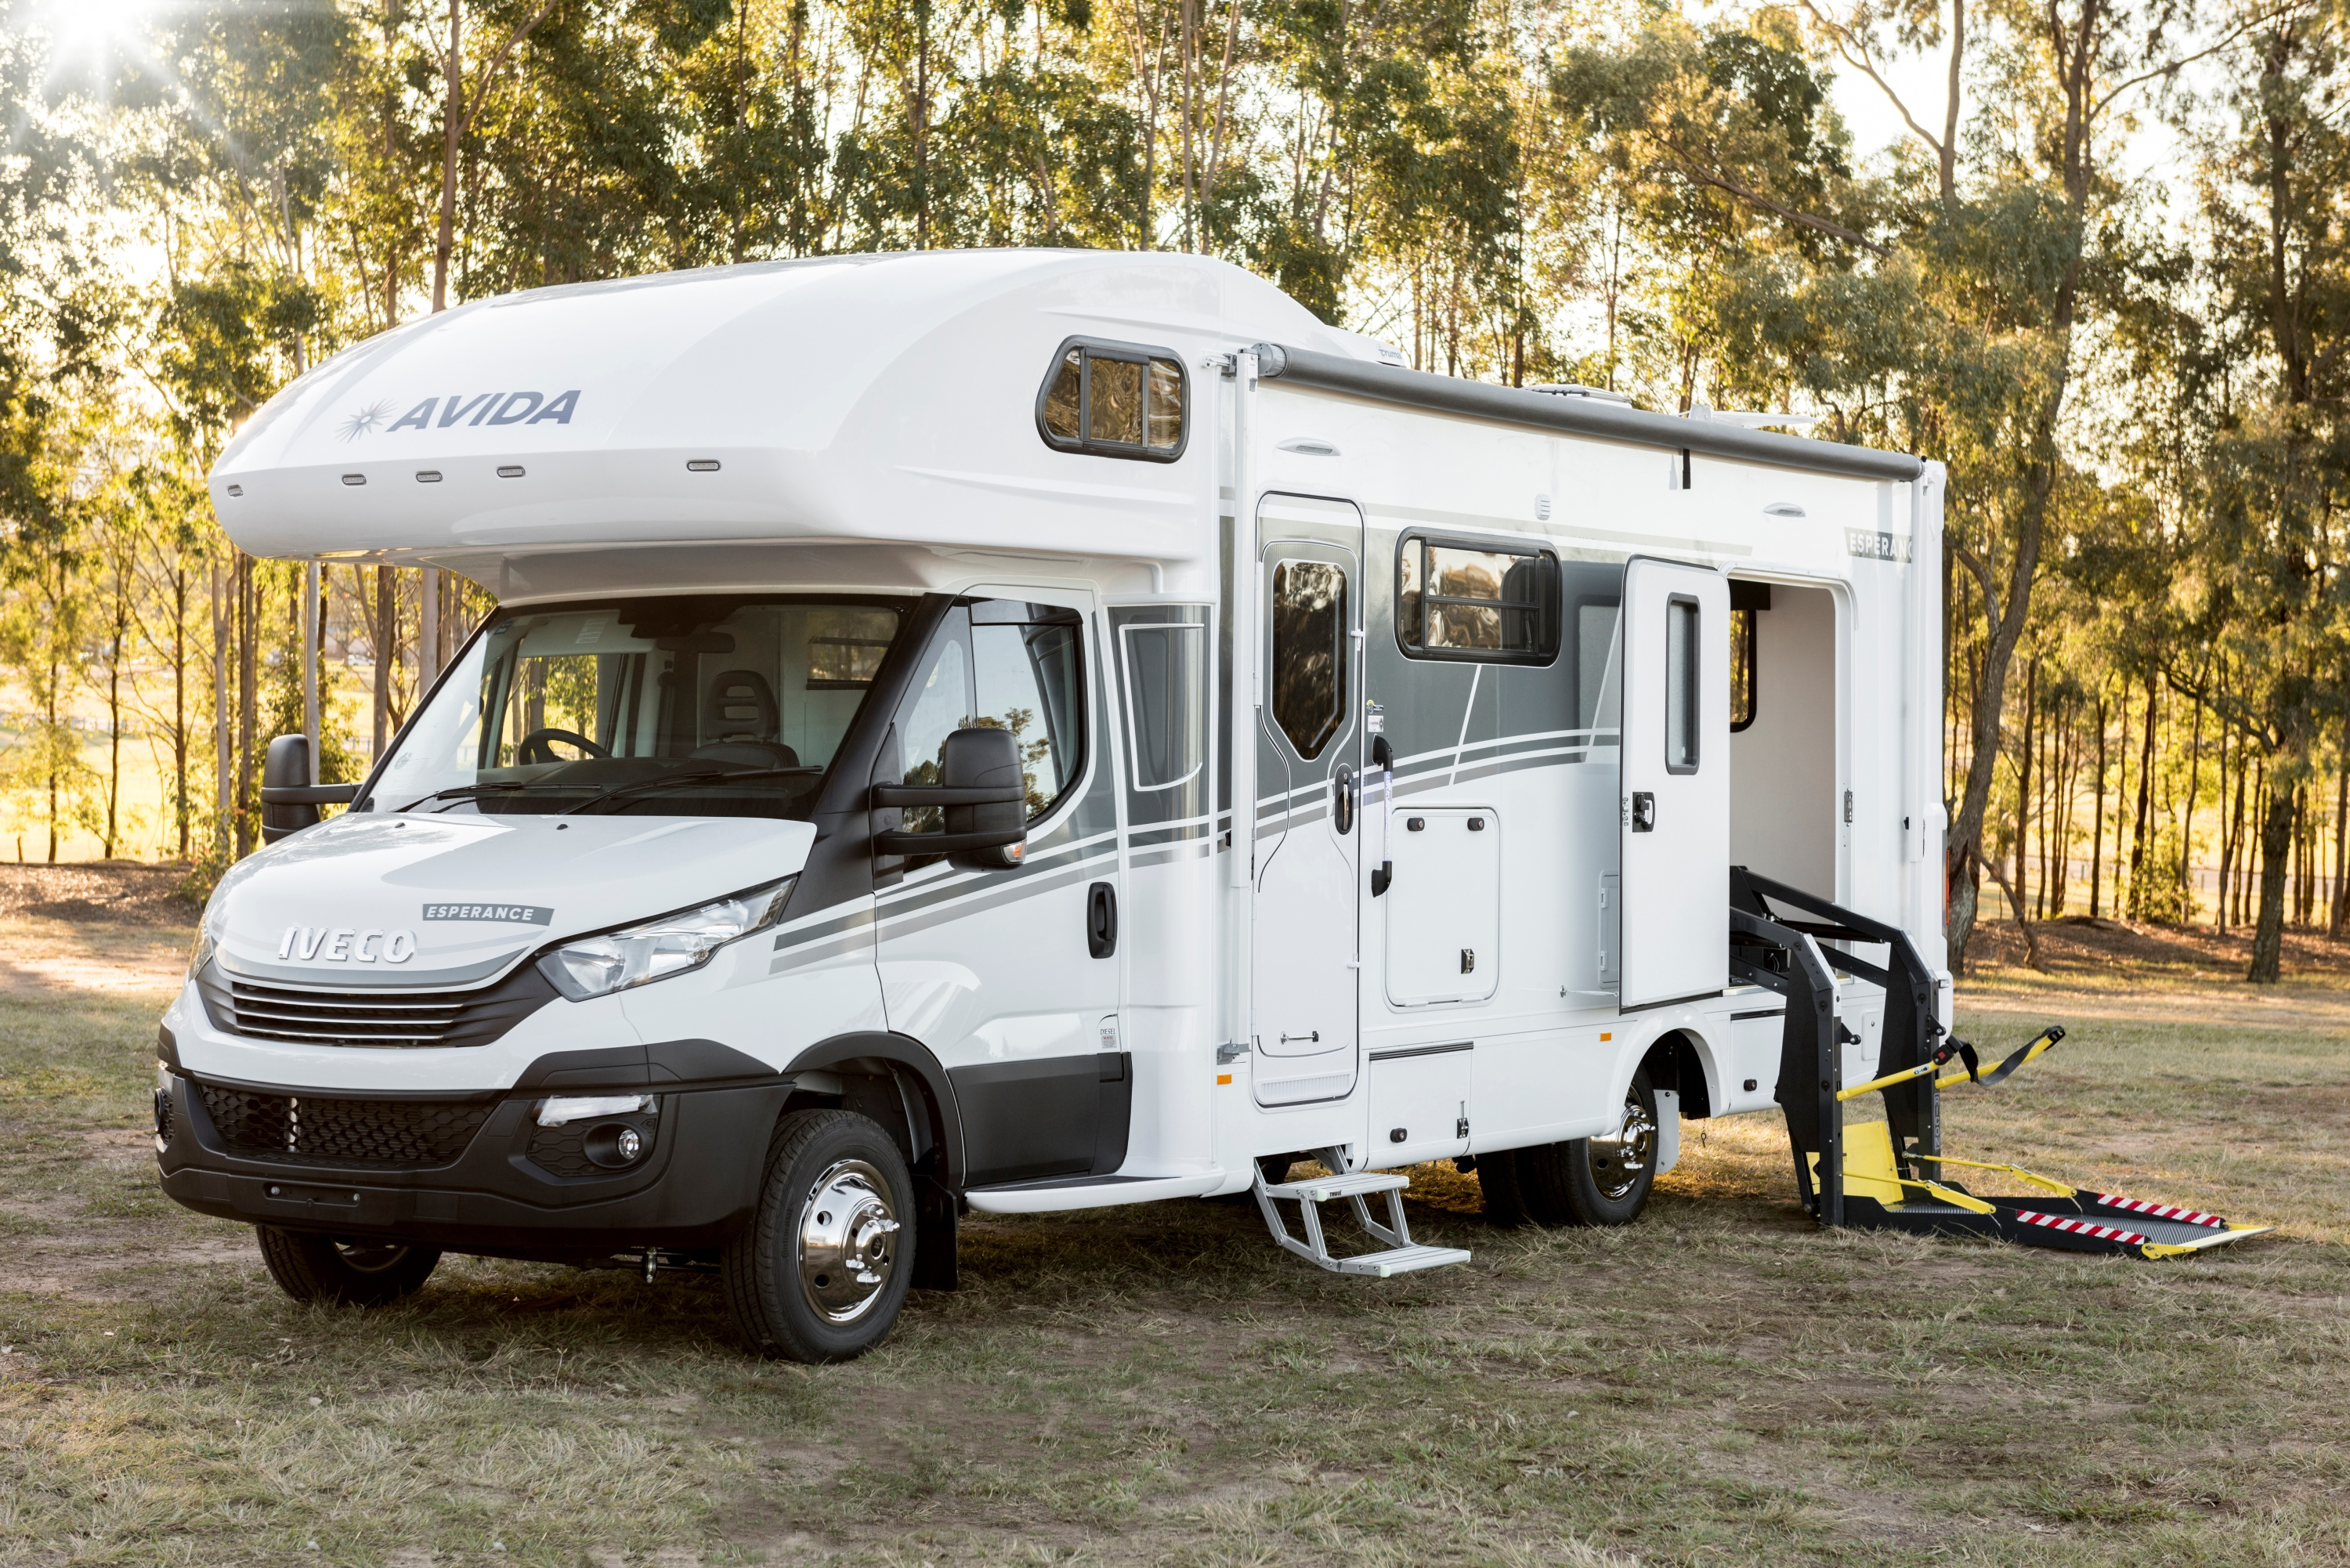 2019 Esperance WheelChairF C7994WSL Exterior_Front Angle Iveco